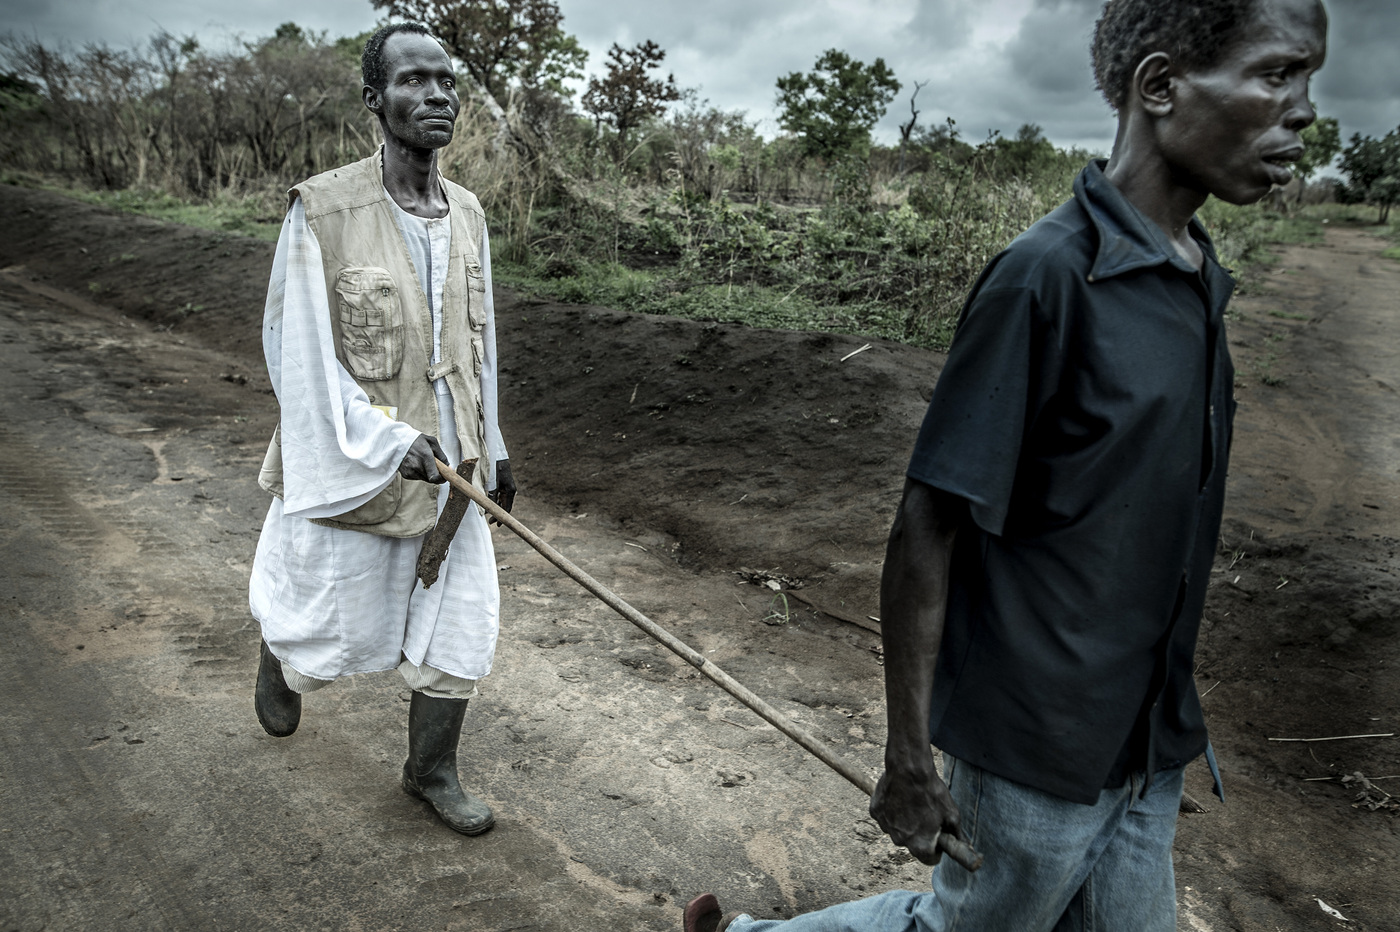 John T. Pedersen Photography - A blind man is guided by another mancrossing the border in the bush. Some walks for days and weeks to get from their village in southern Sudan and onto the Ugandan side.